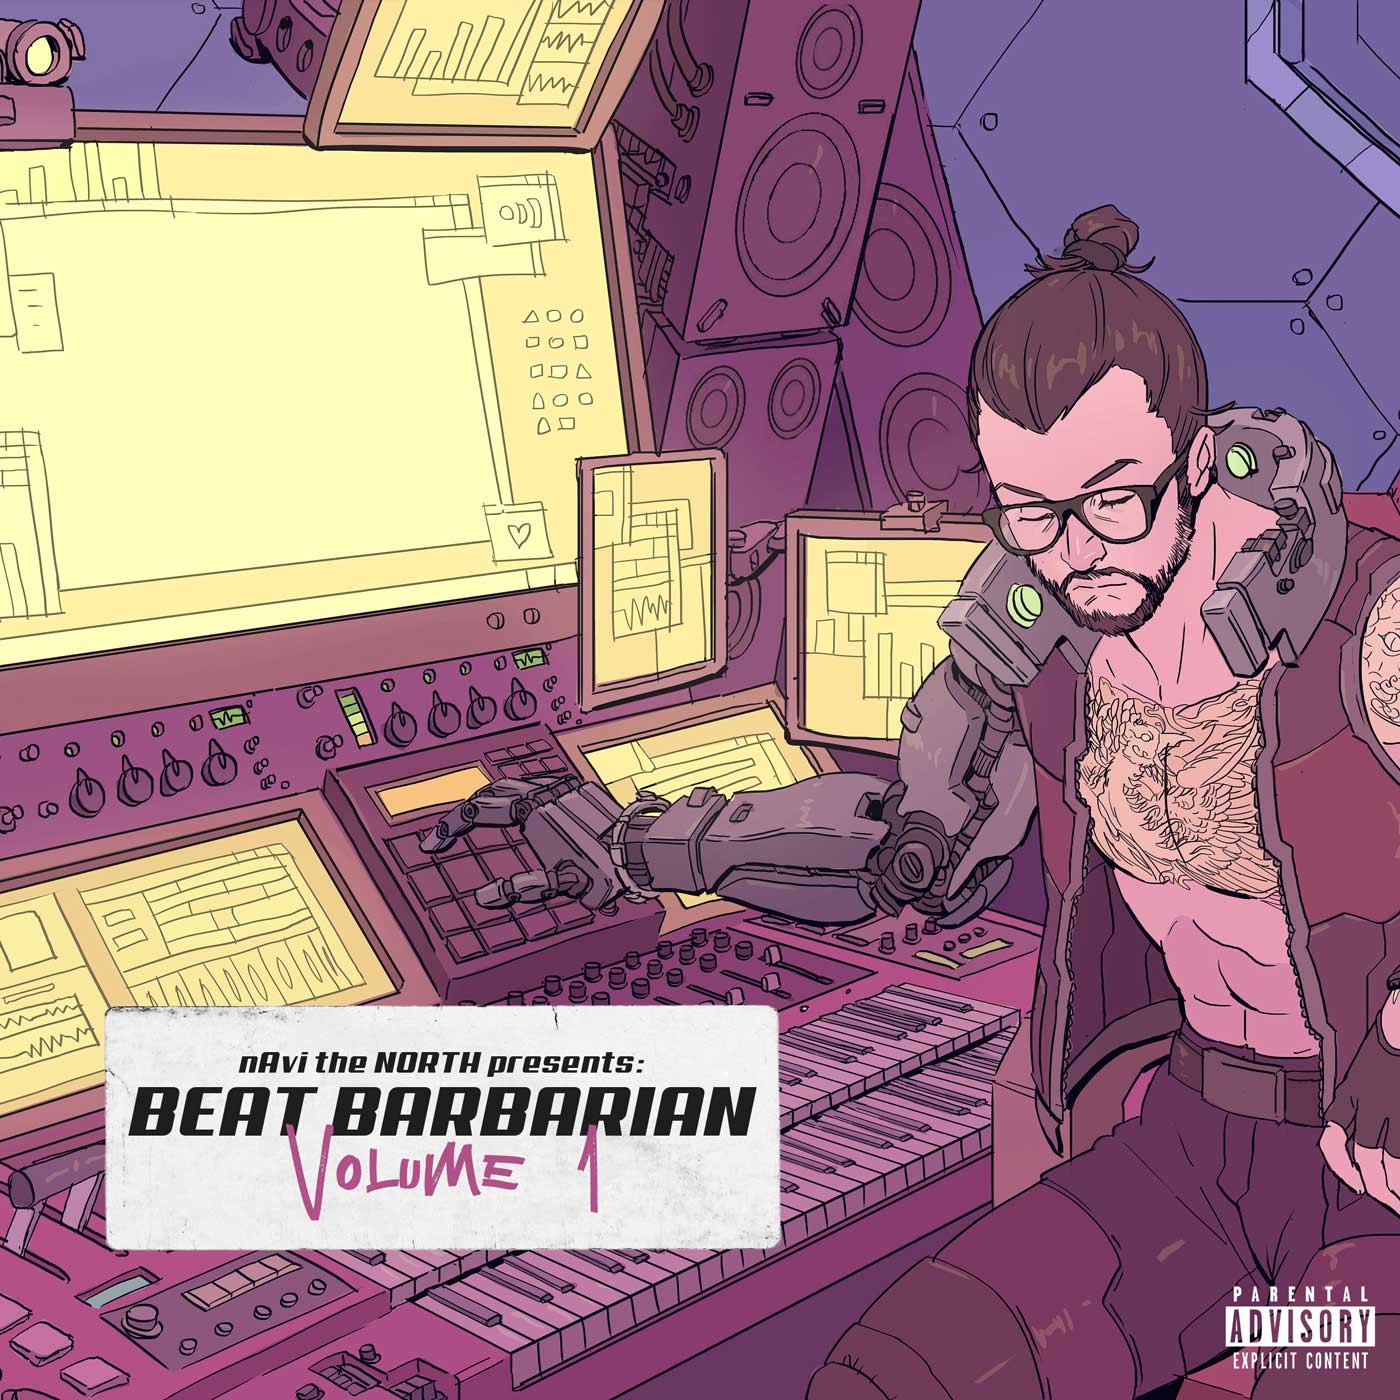 Beat Barbarian Volume 1